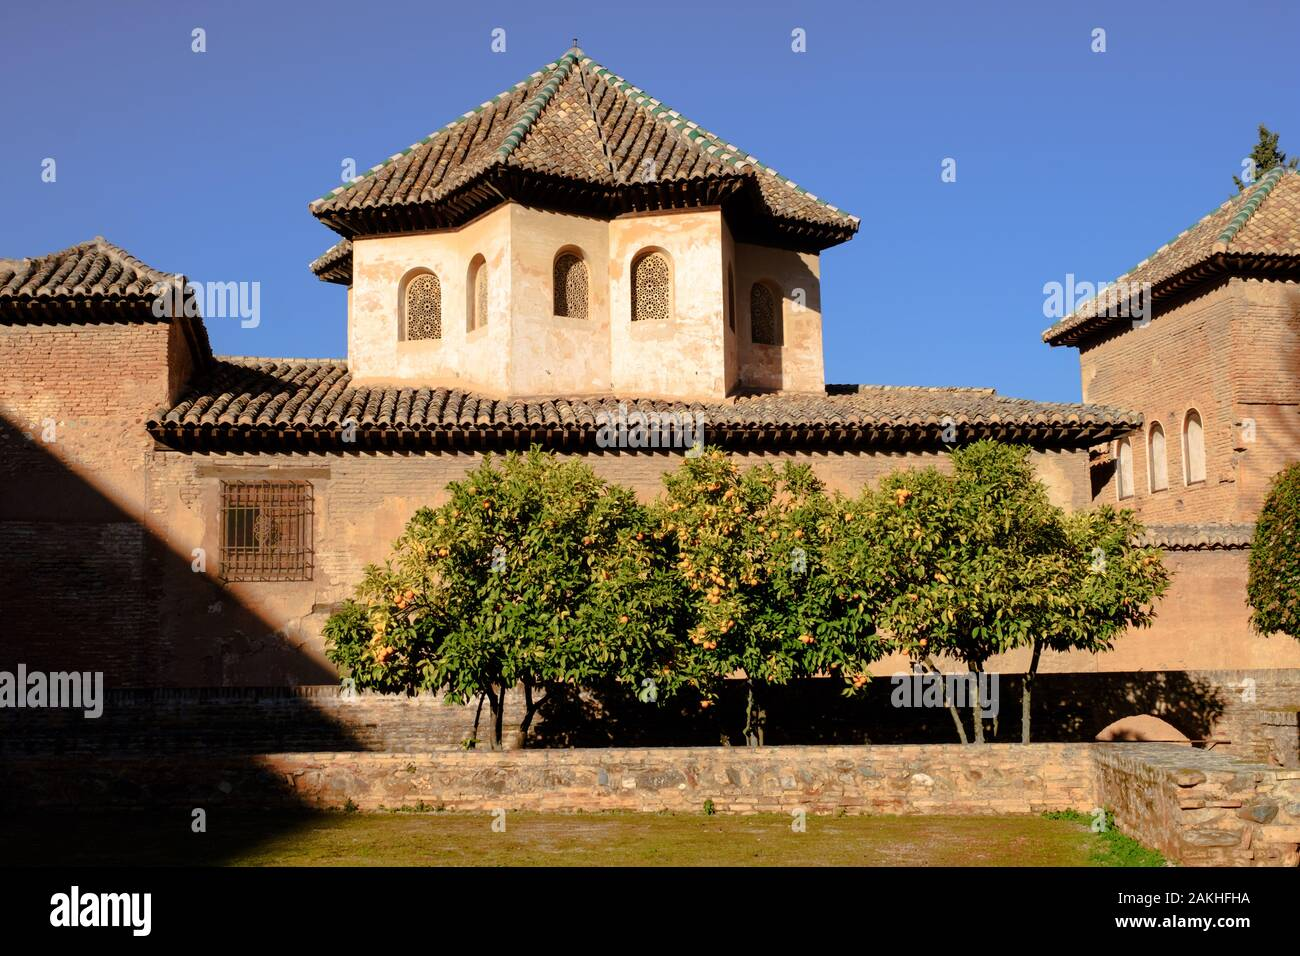 Moorish design and architecture in the Nasrid palaces at the Alhambra in Granada, Andalucia, Spain, Europe Stock Photo